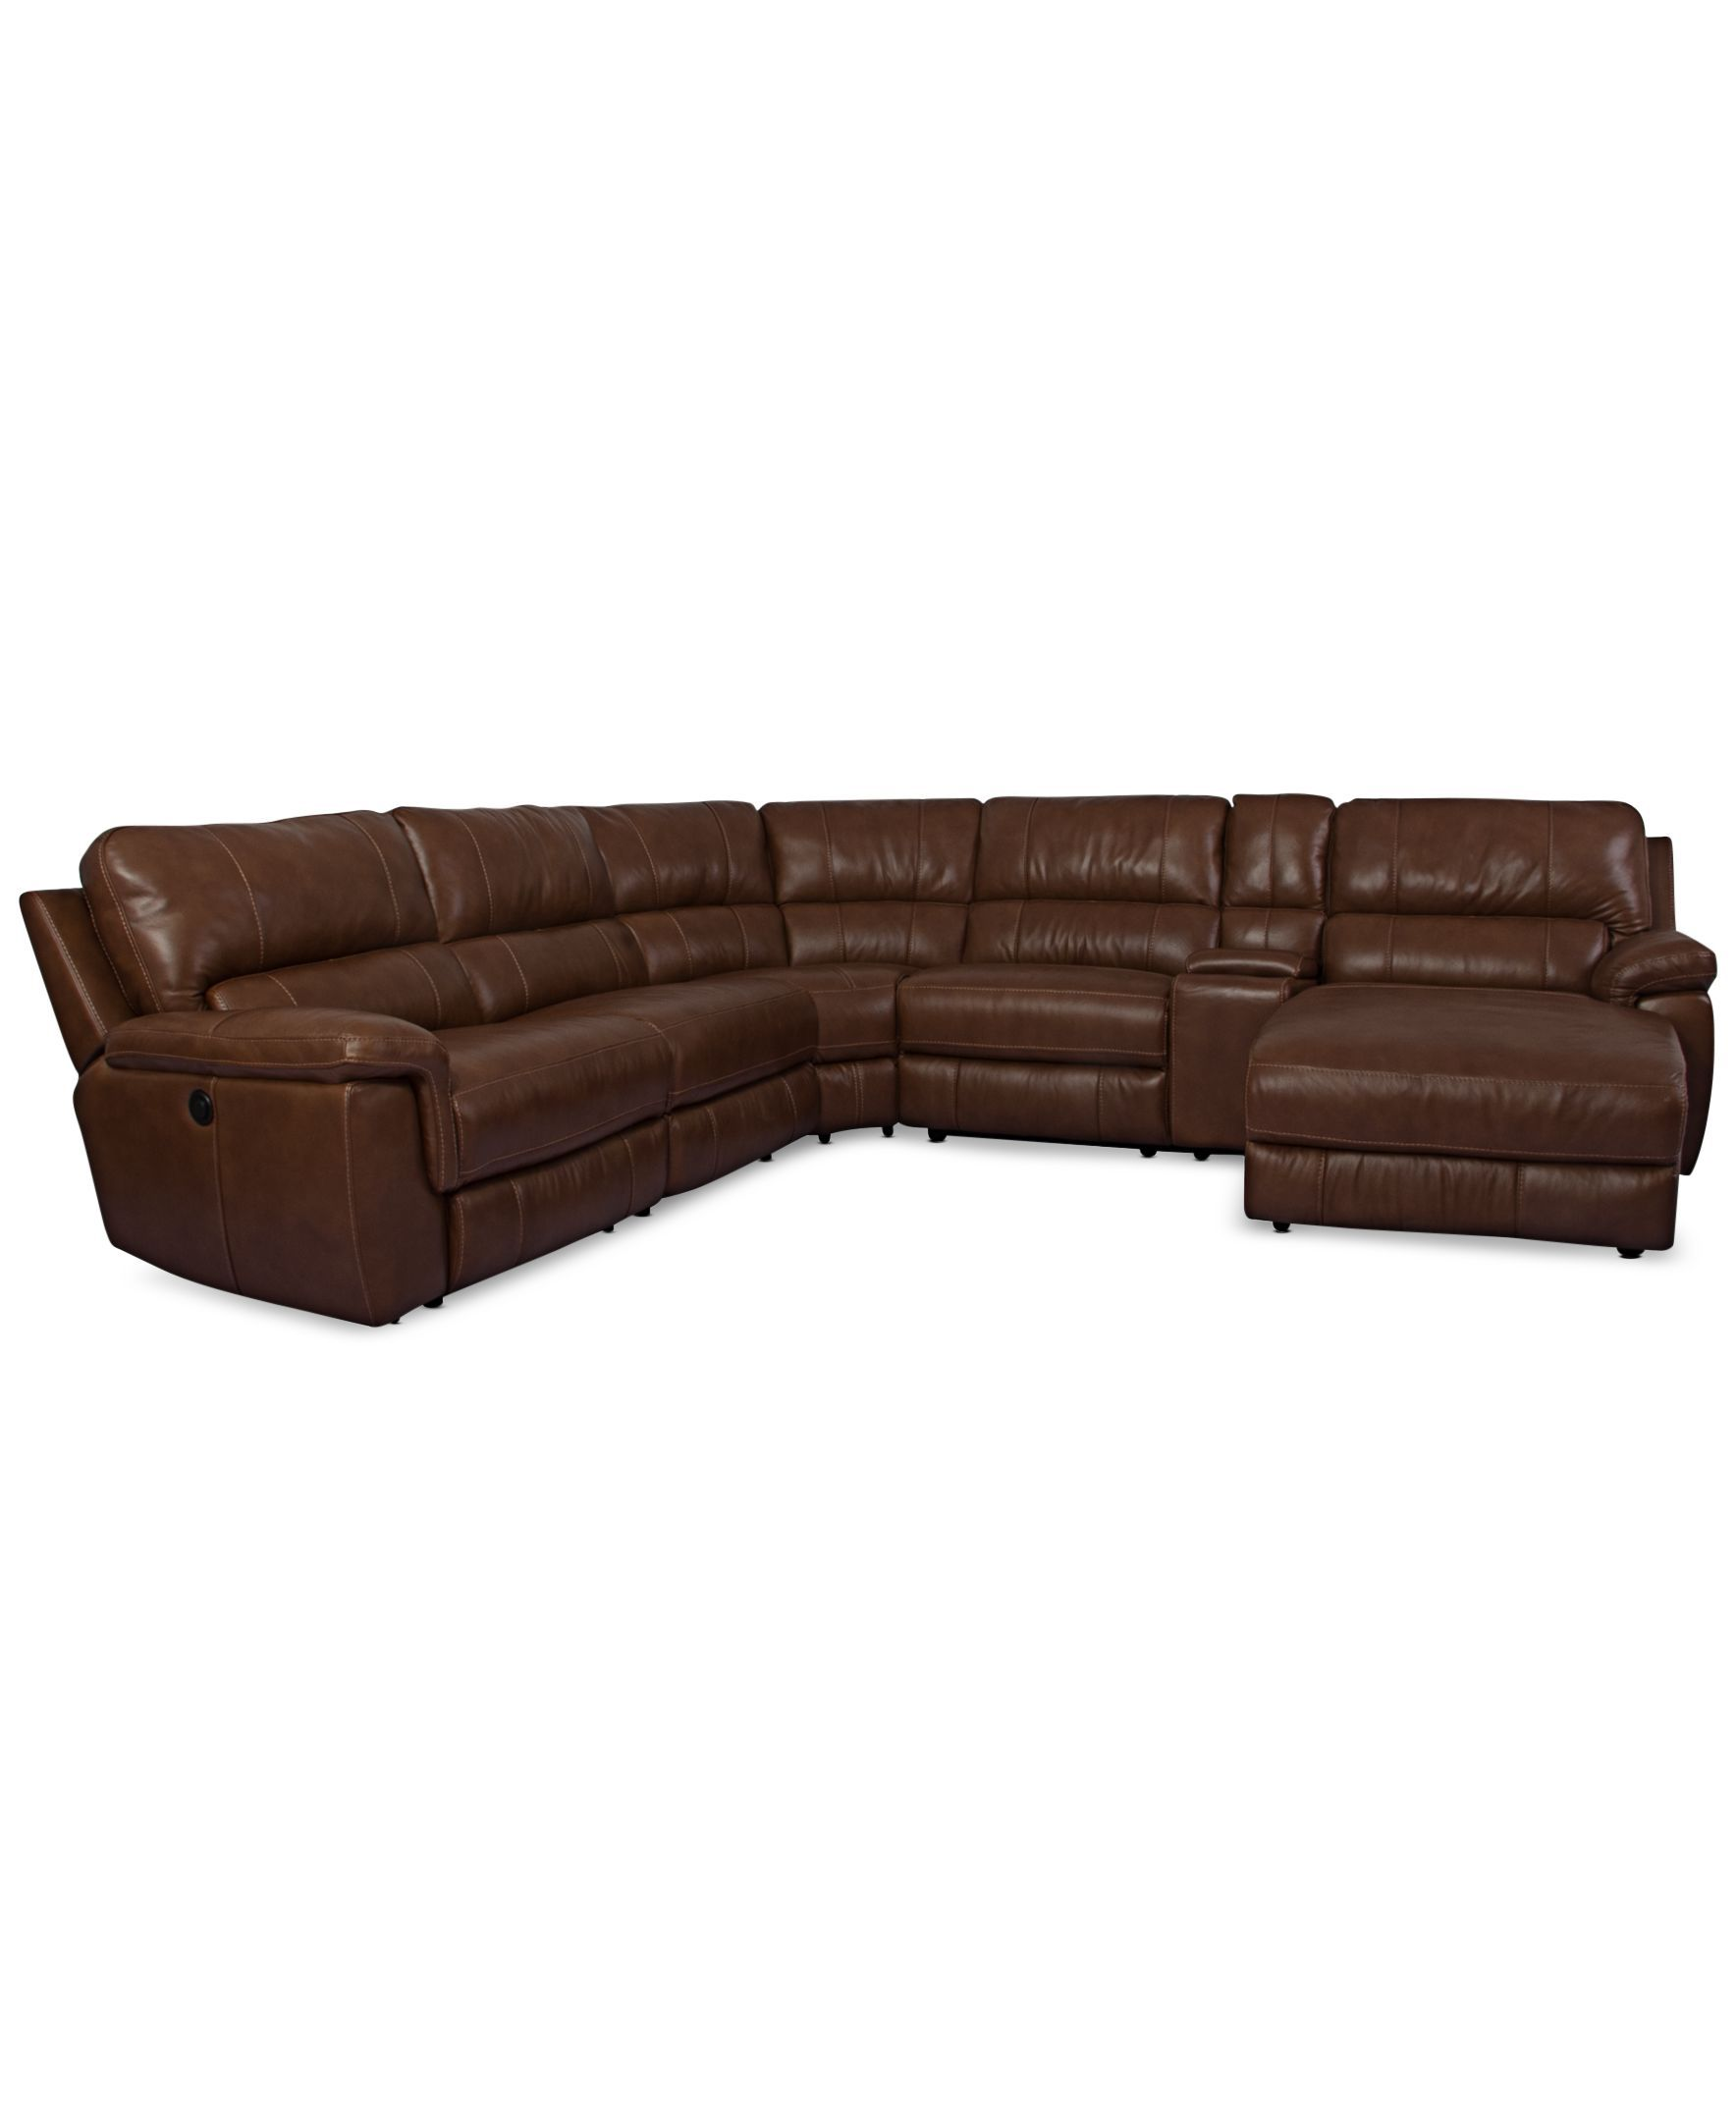 Brandie Leather 6-Piece Chaise Sectional Sofa with 2 Power Recliners